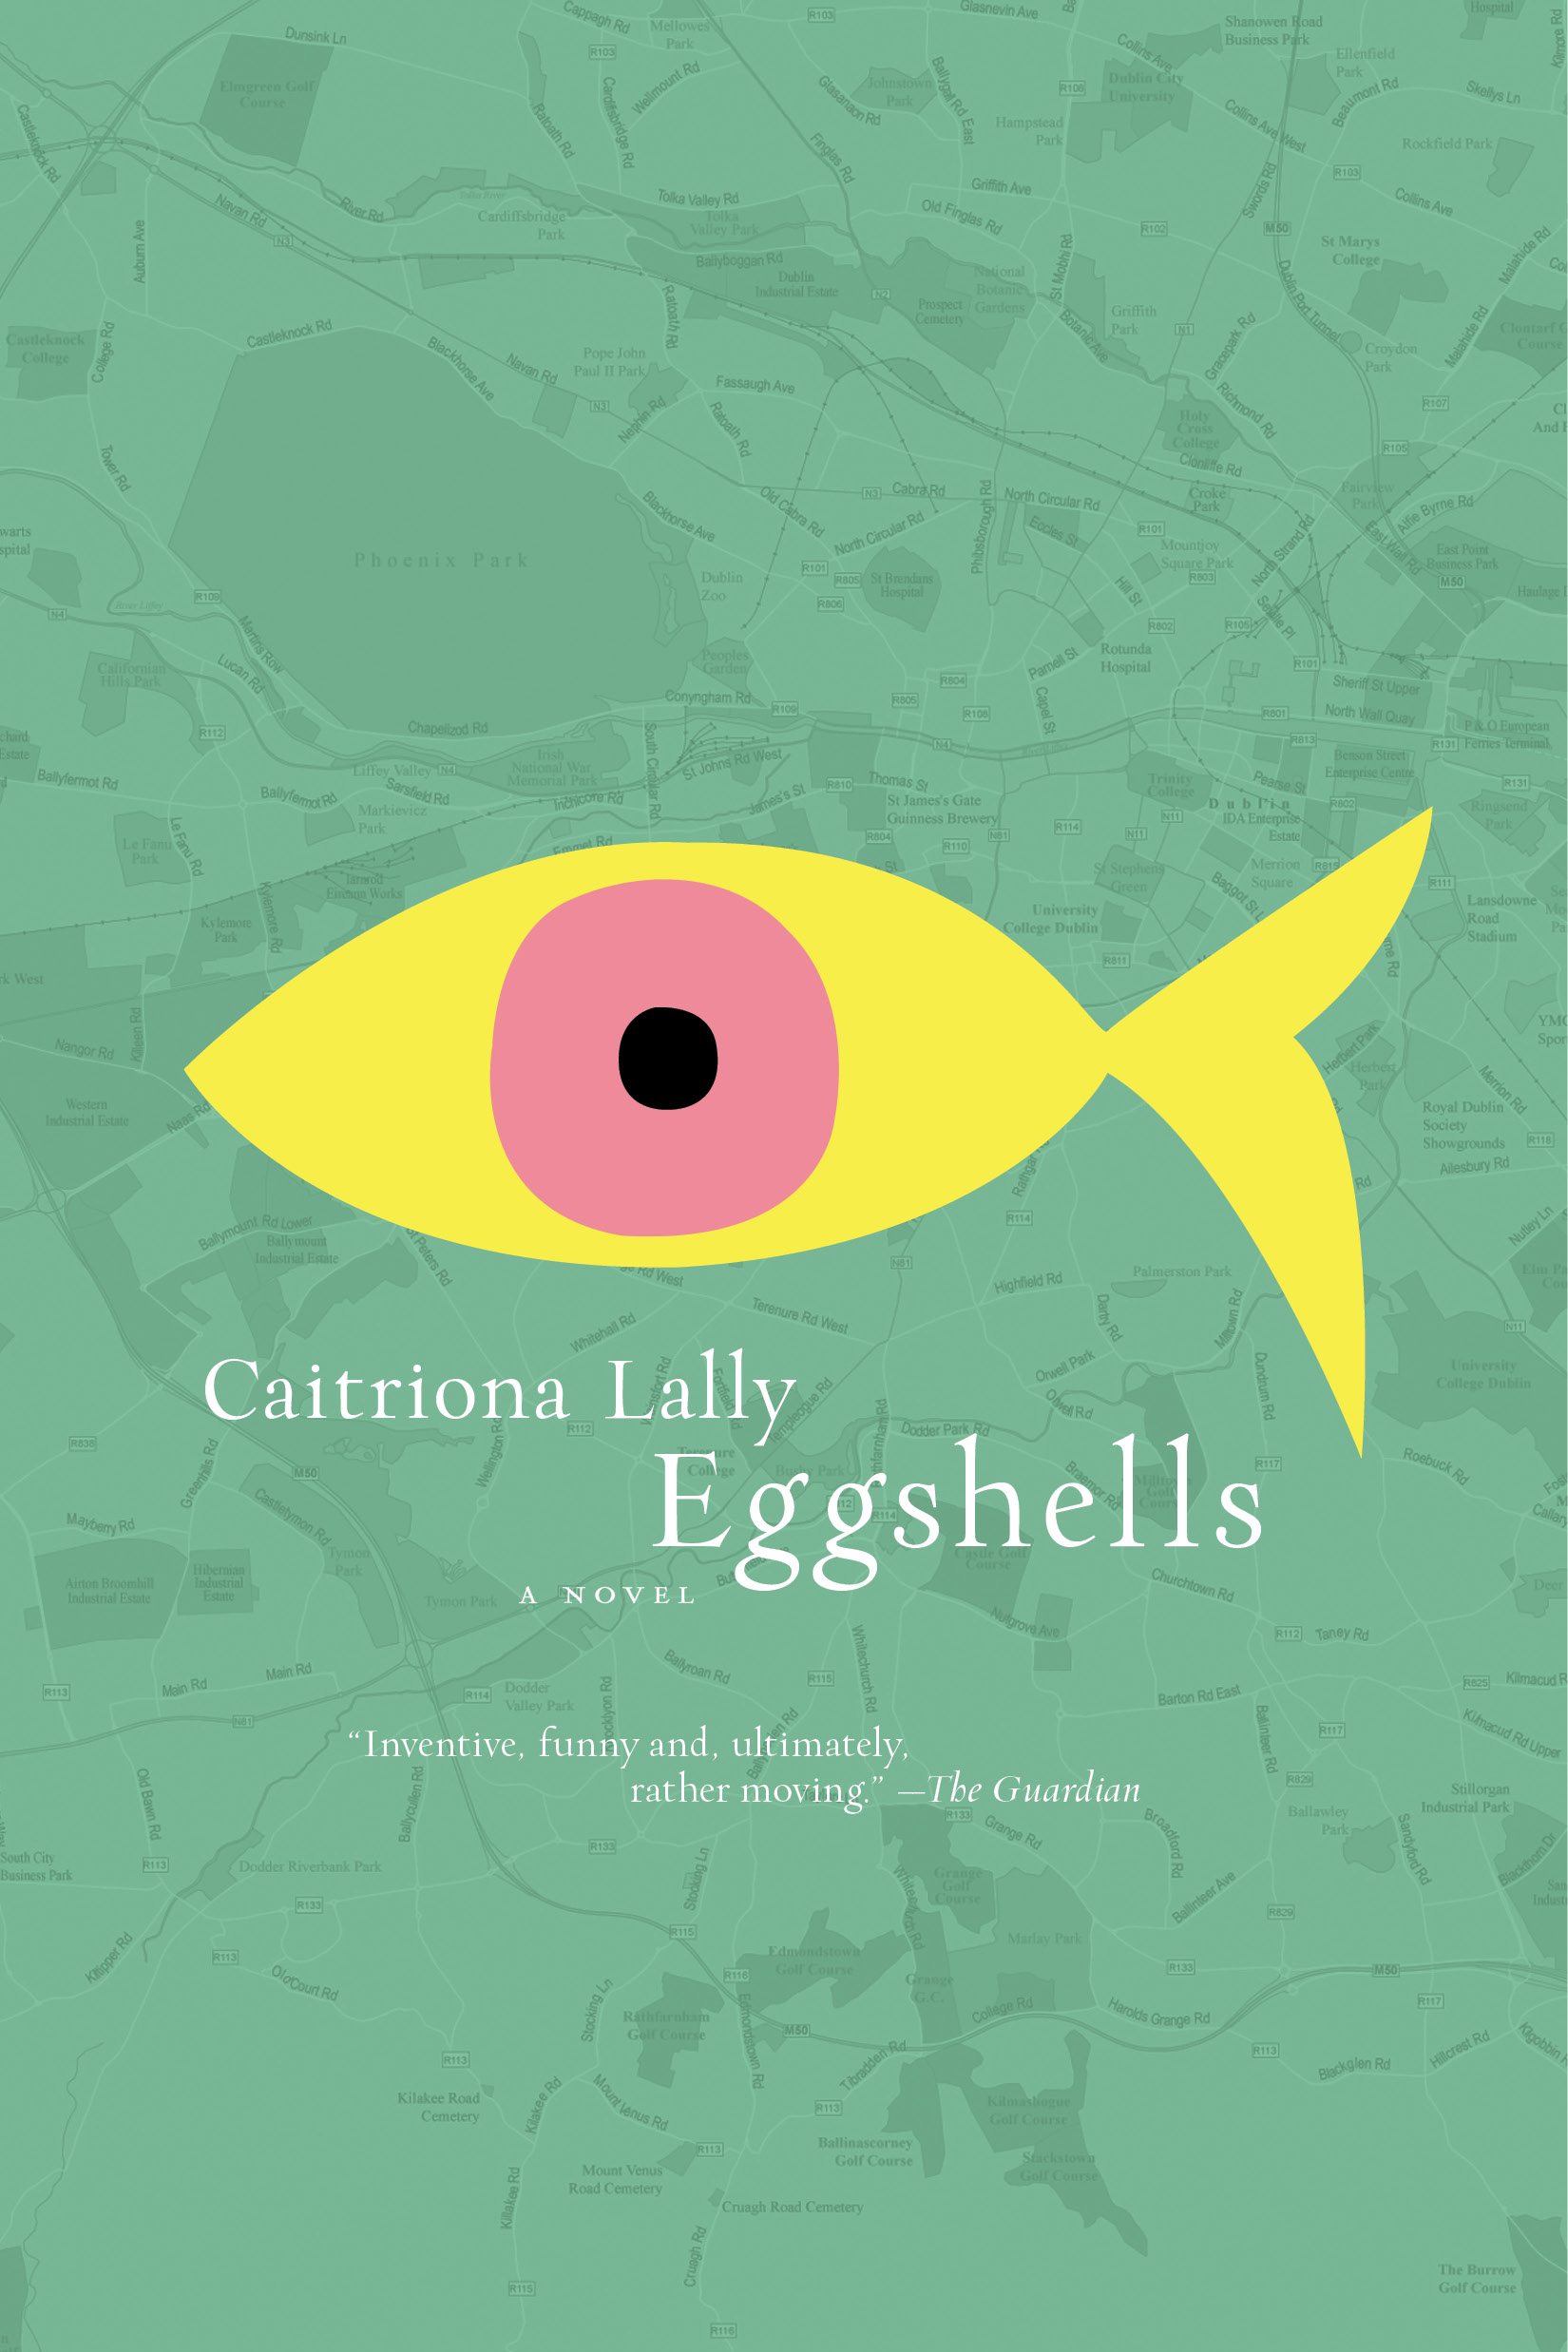 Melville House author Caitriona Lally wins the Rooney Prize